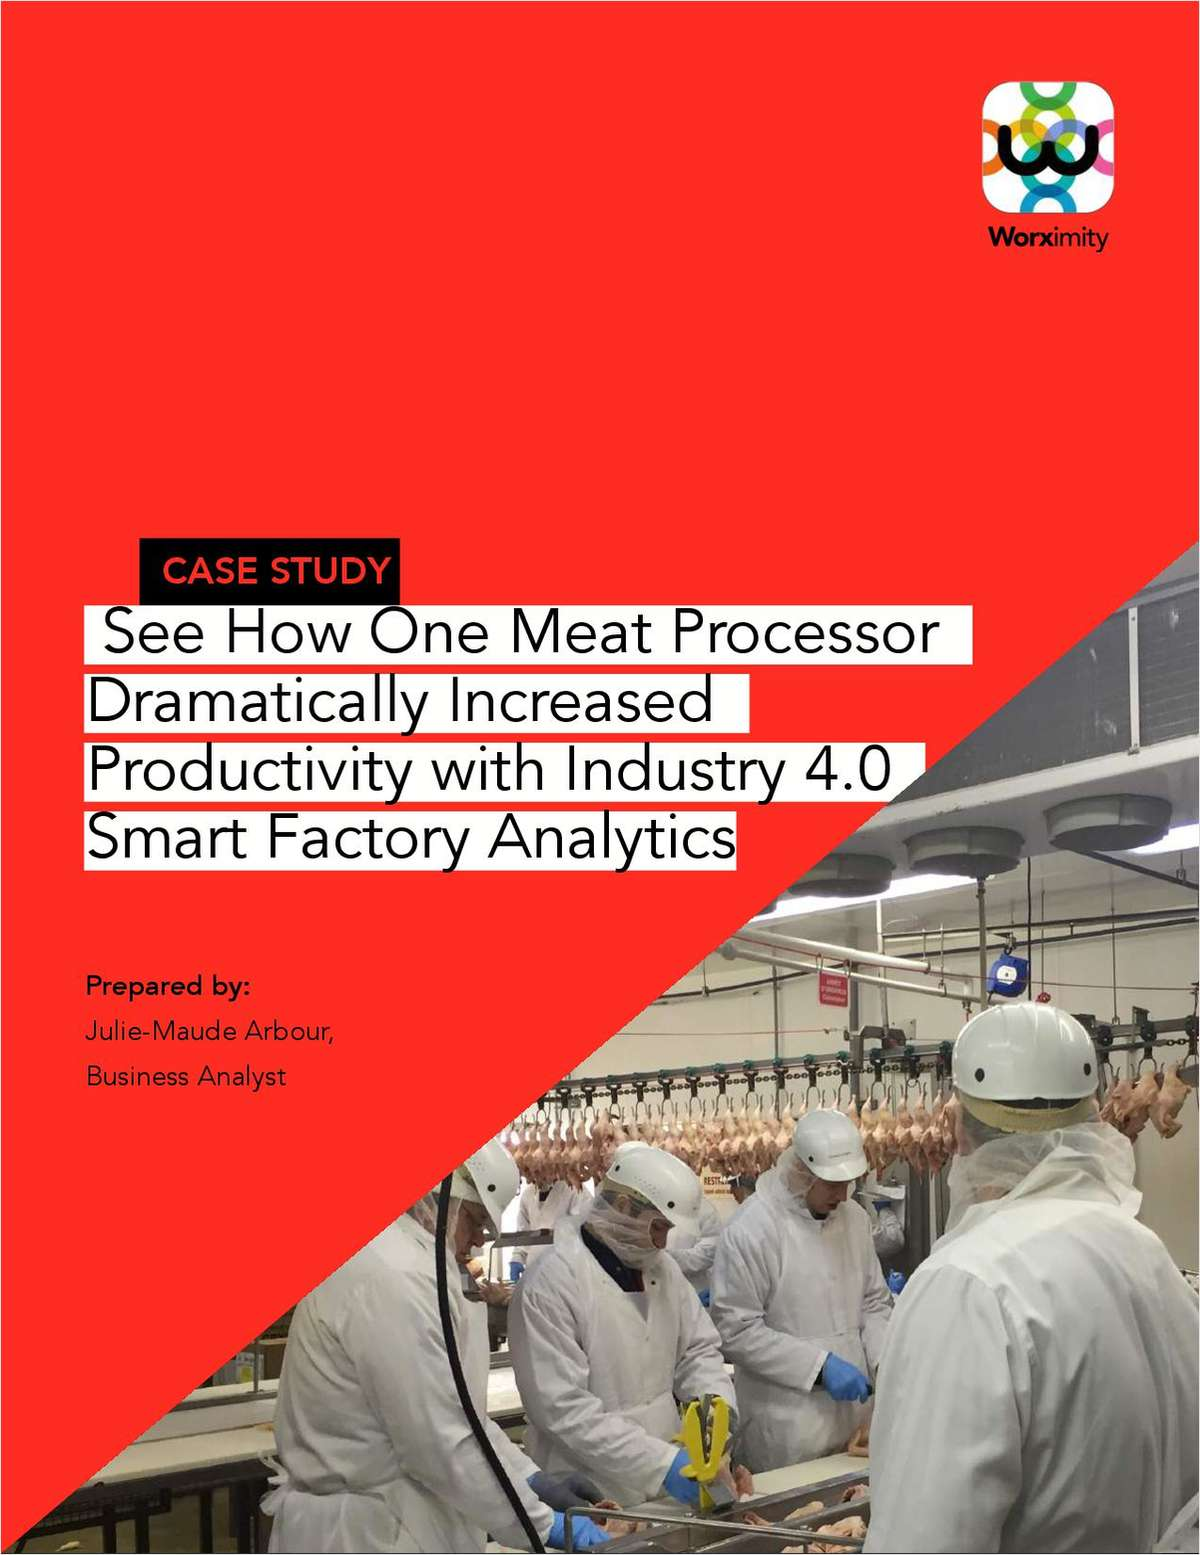 See How One Meat Processor Dramatically Increased Productivity with Industry 4.0 Smart Factory Analytics